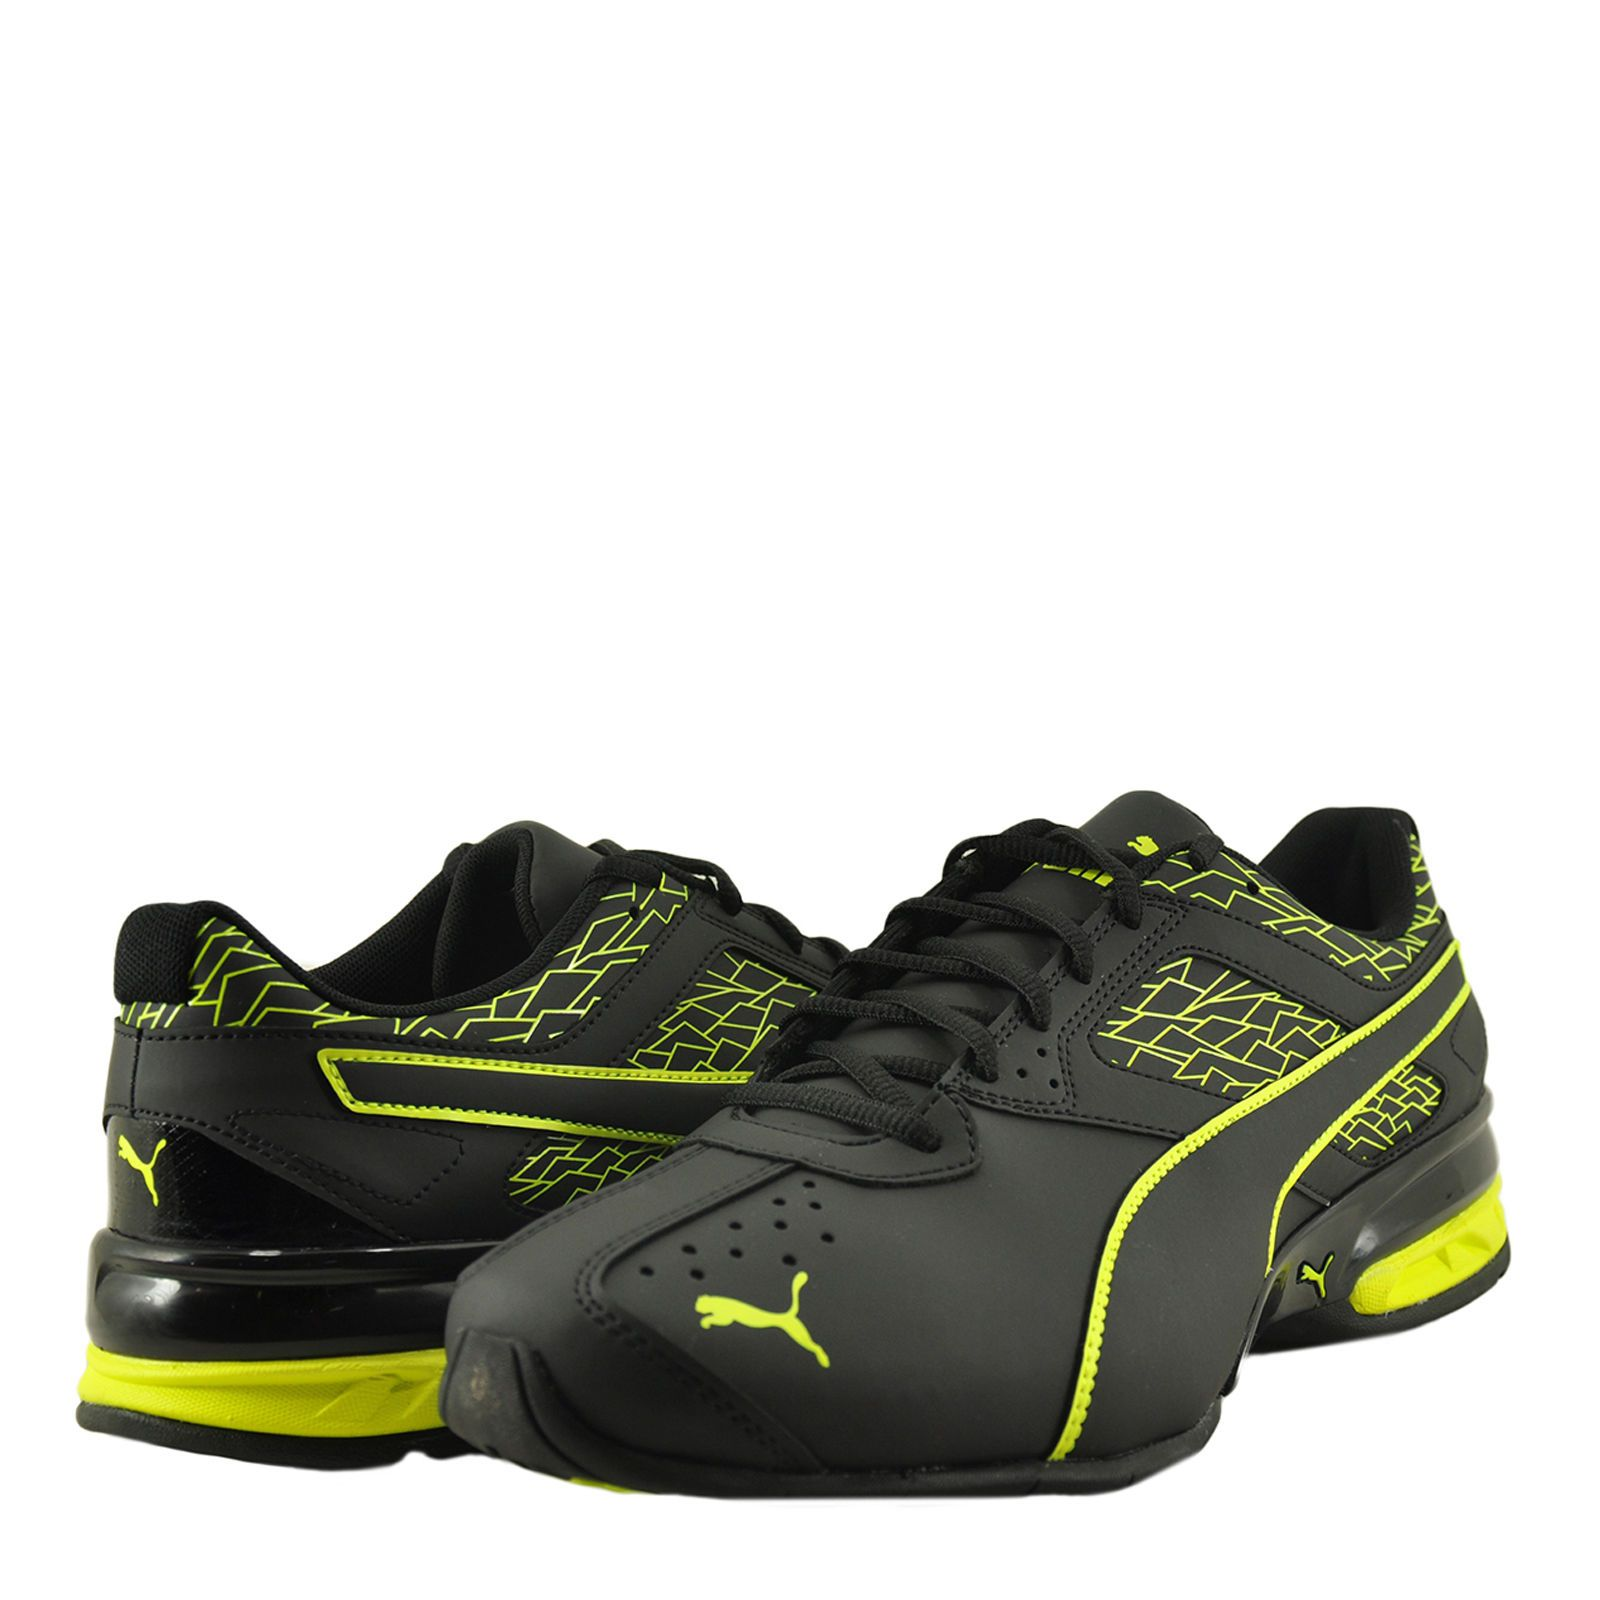 72bb4277eca2c1 Men S Shoes Puma Tazon 6 Fracture Fm Sneaker 189875-05 Black Safety Yellow